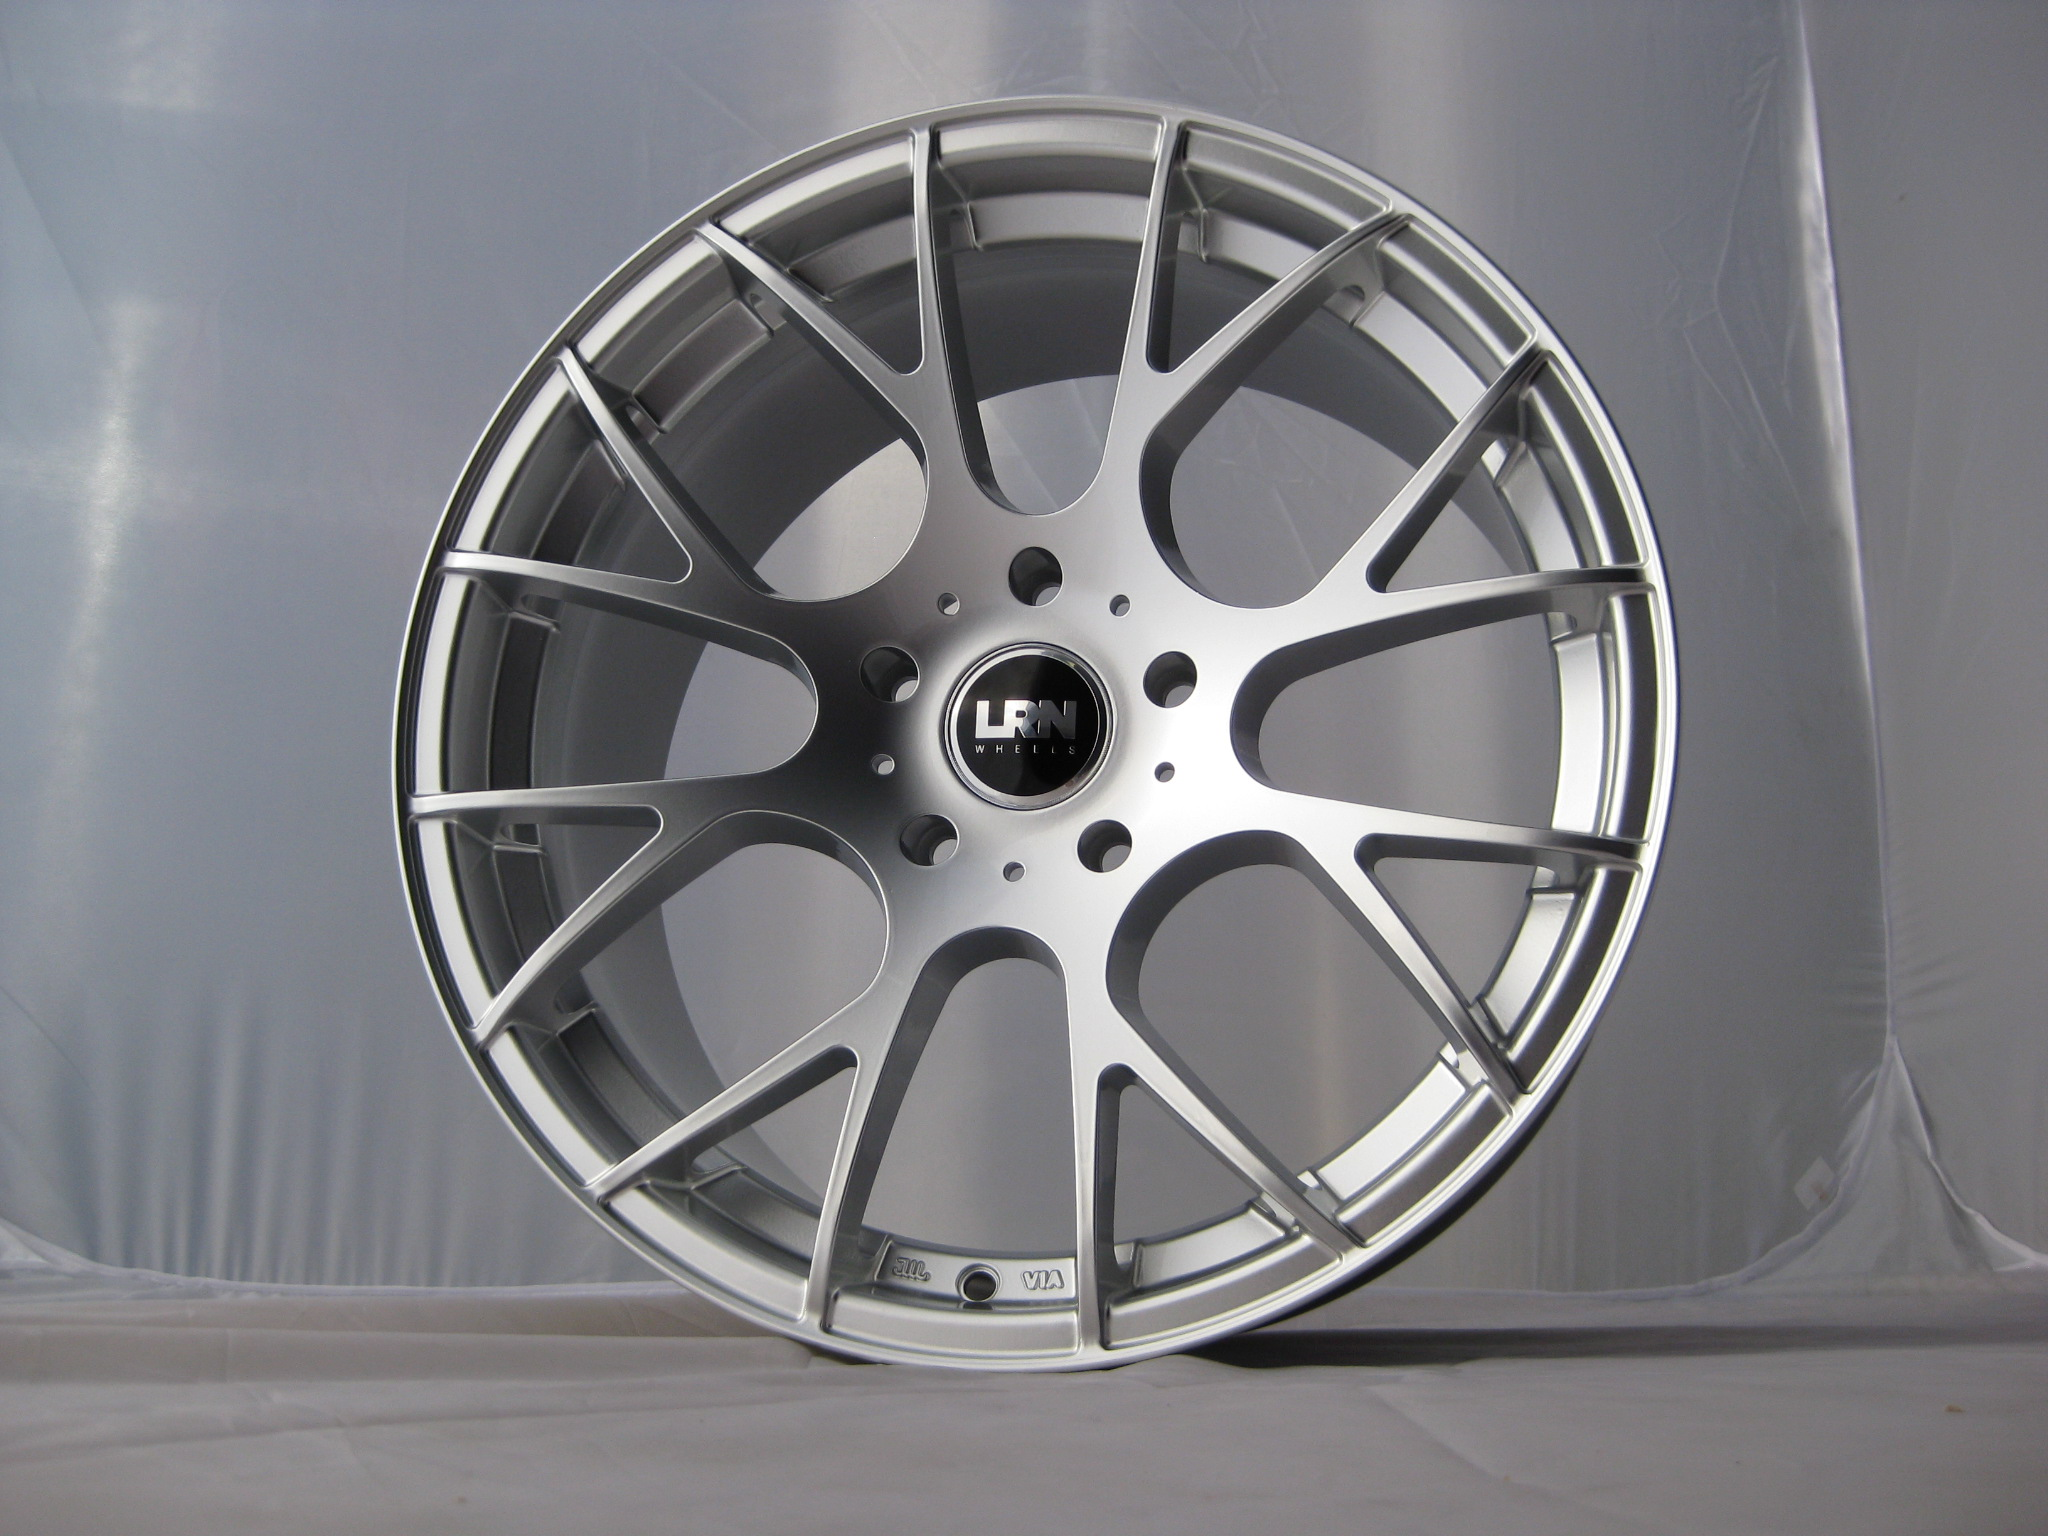 "NEW 18"" LRN CYCLONE ALLOYS IN HYPER SILVER, DEEP 9"" CONCAVE REAR,MUST BE SEEN!!"